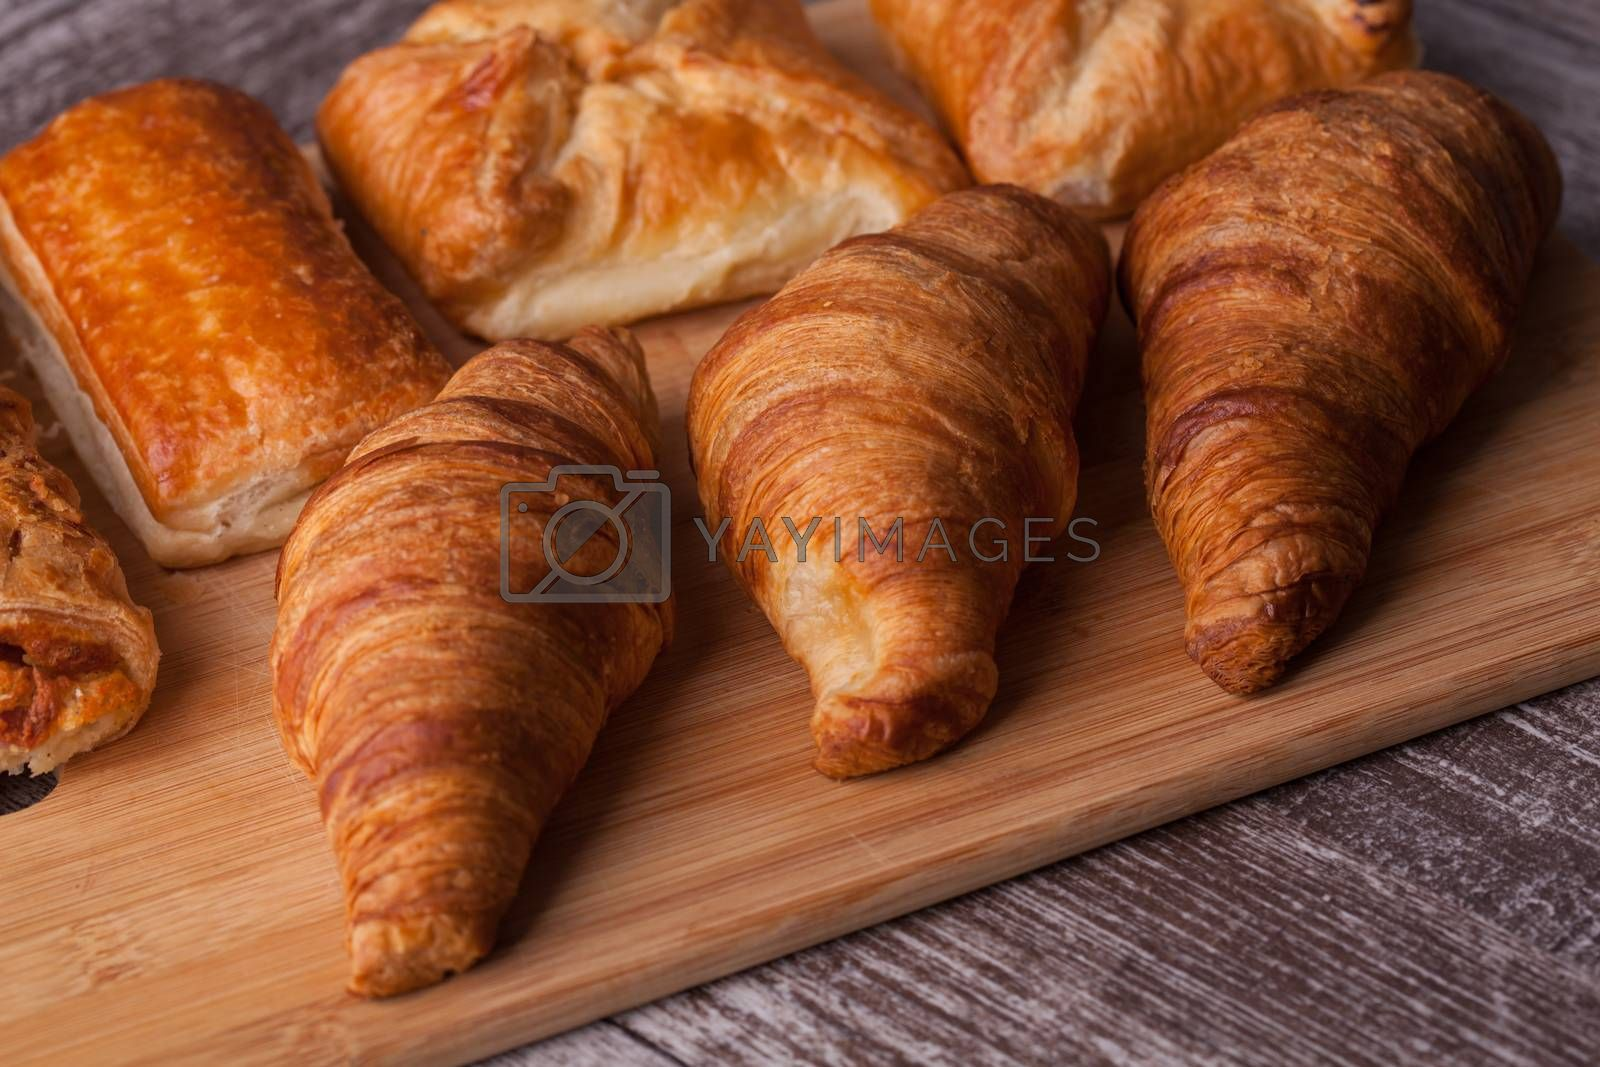 Assortment of french pastries on cutting board. Delicious Brunch.